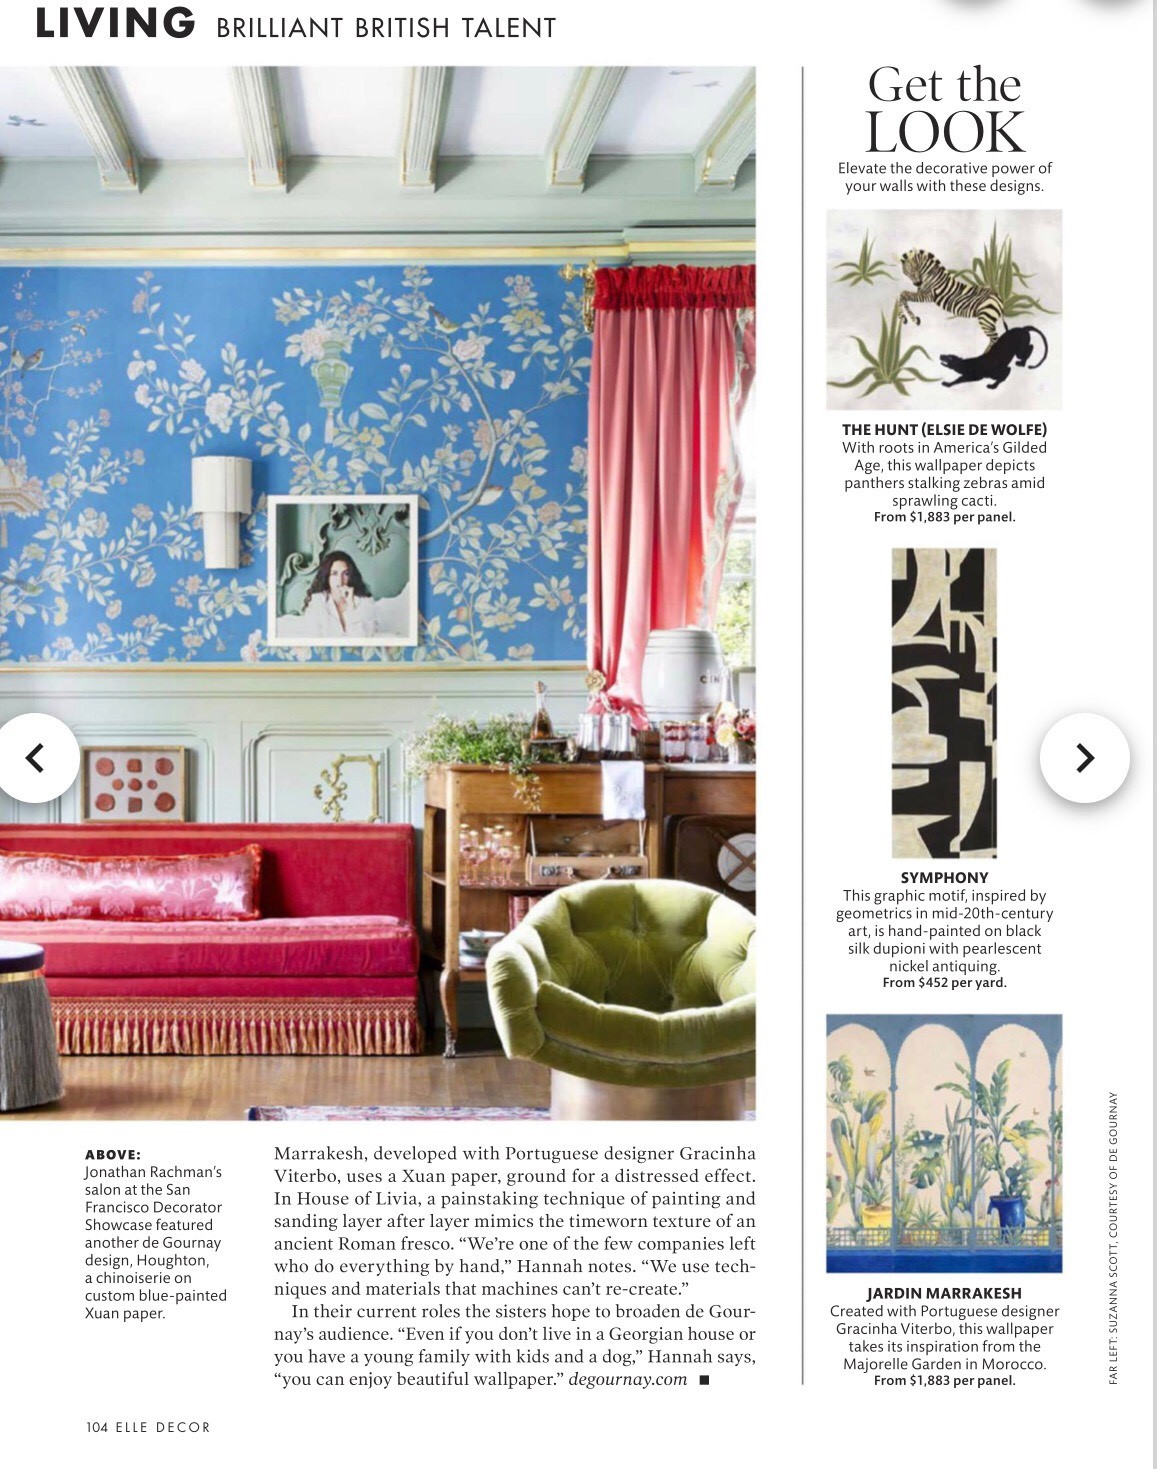 Elle Decor Magazine — Jonathan Rachman Design